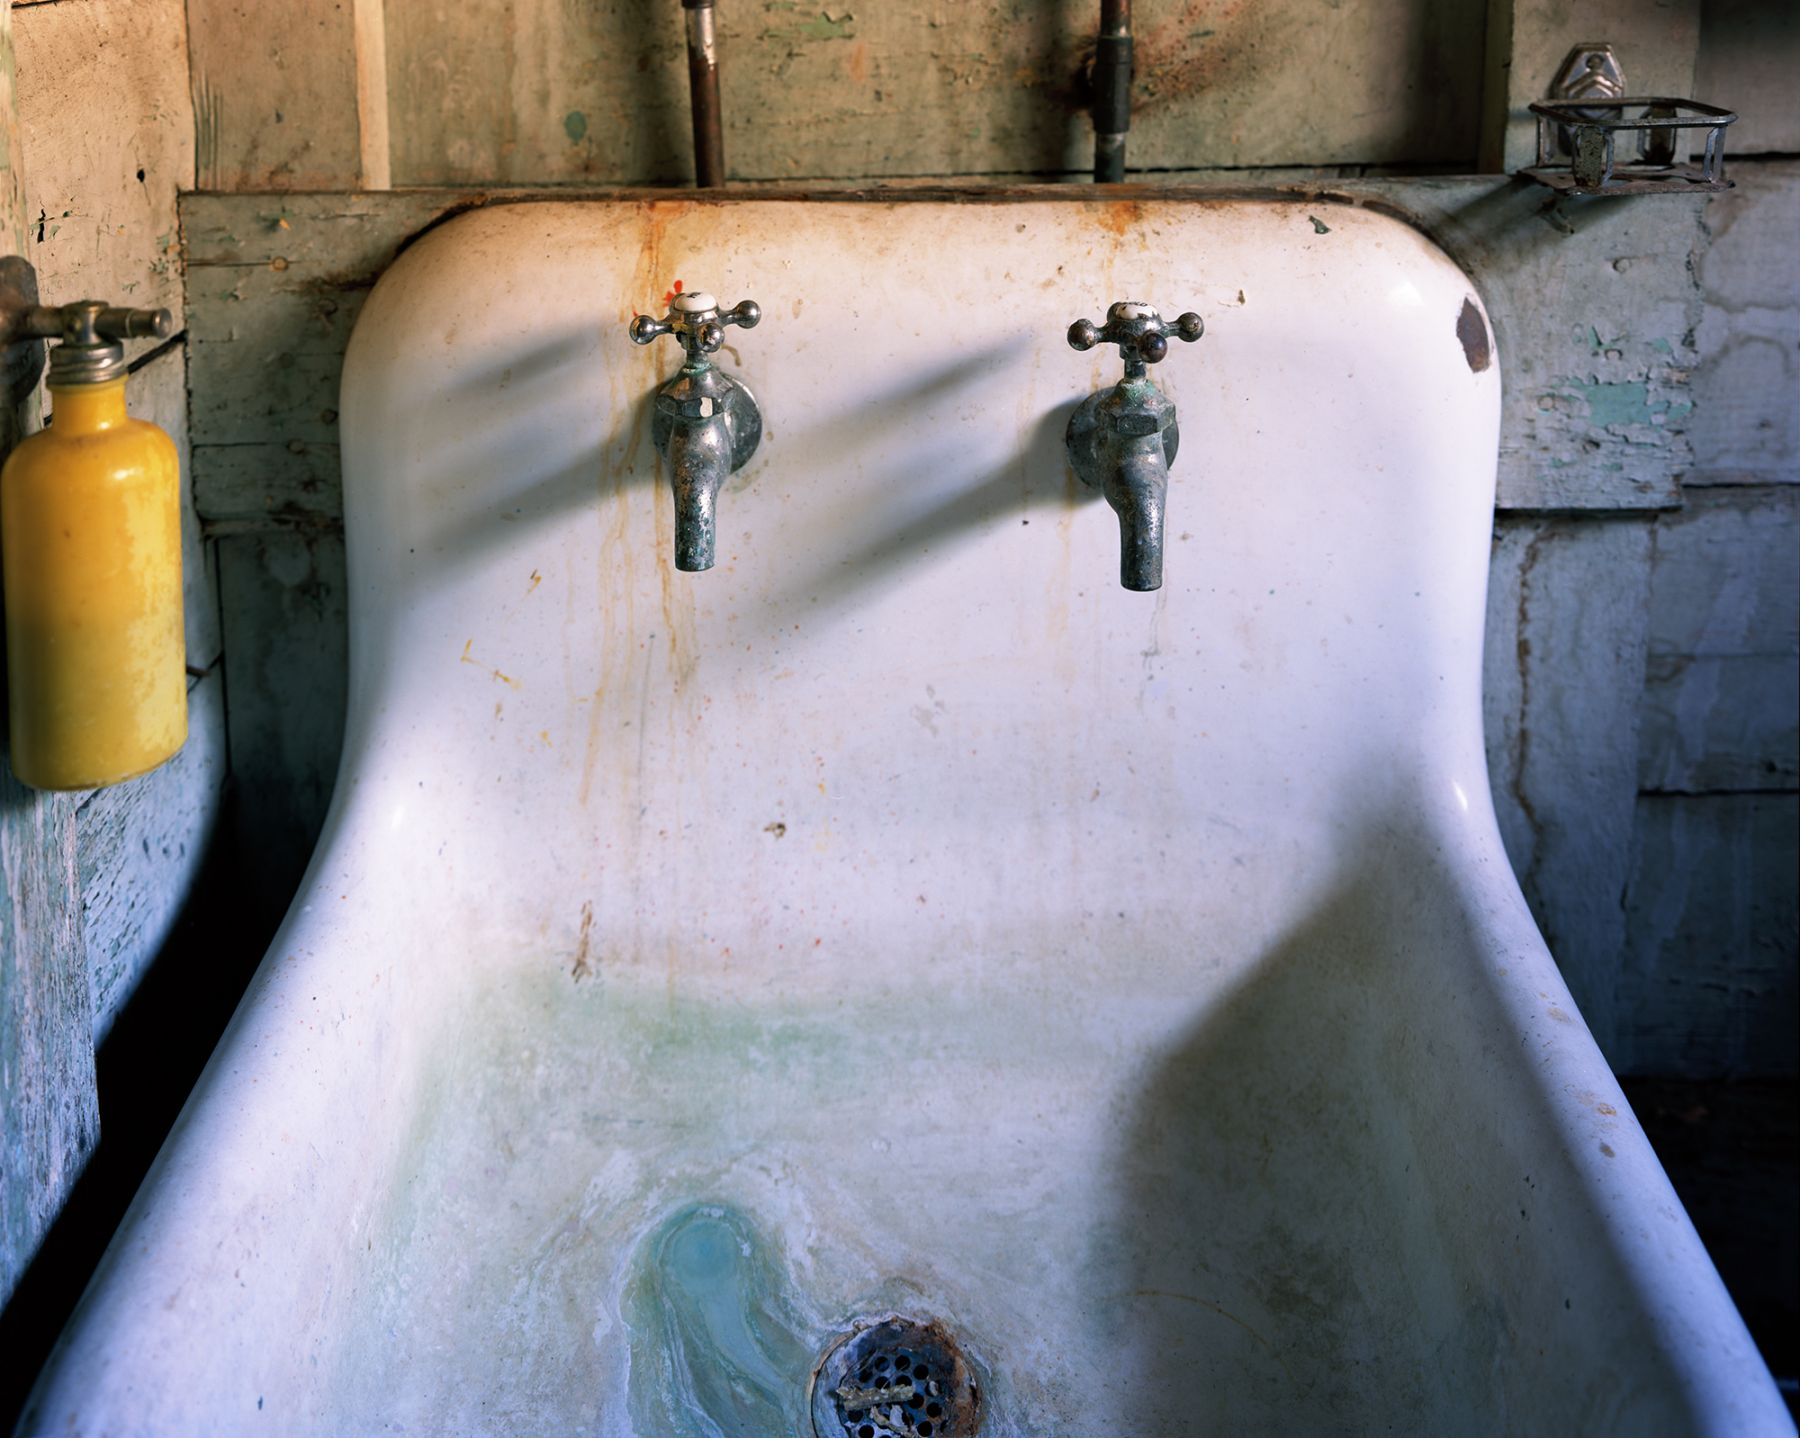 Sink (After Gober)  Archival Pigment Print  Editions of 5  20 x 25 inches  16 x 20 inches